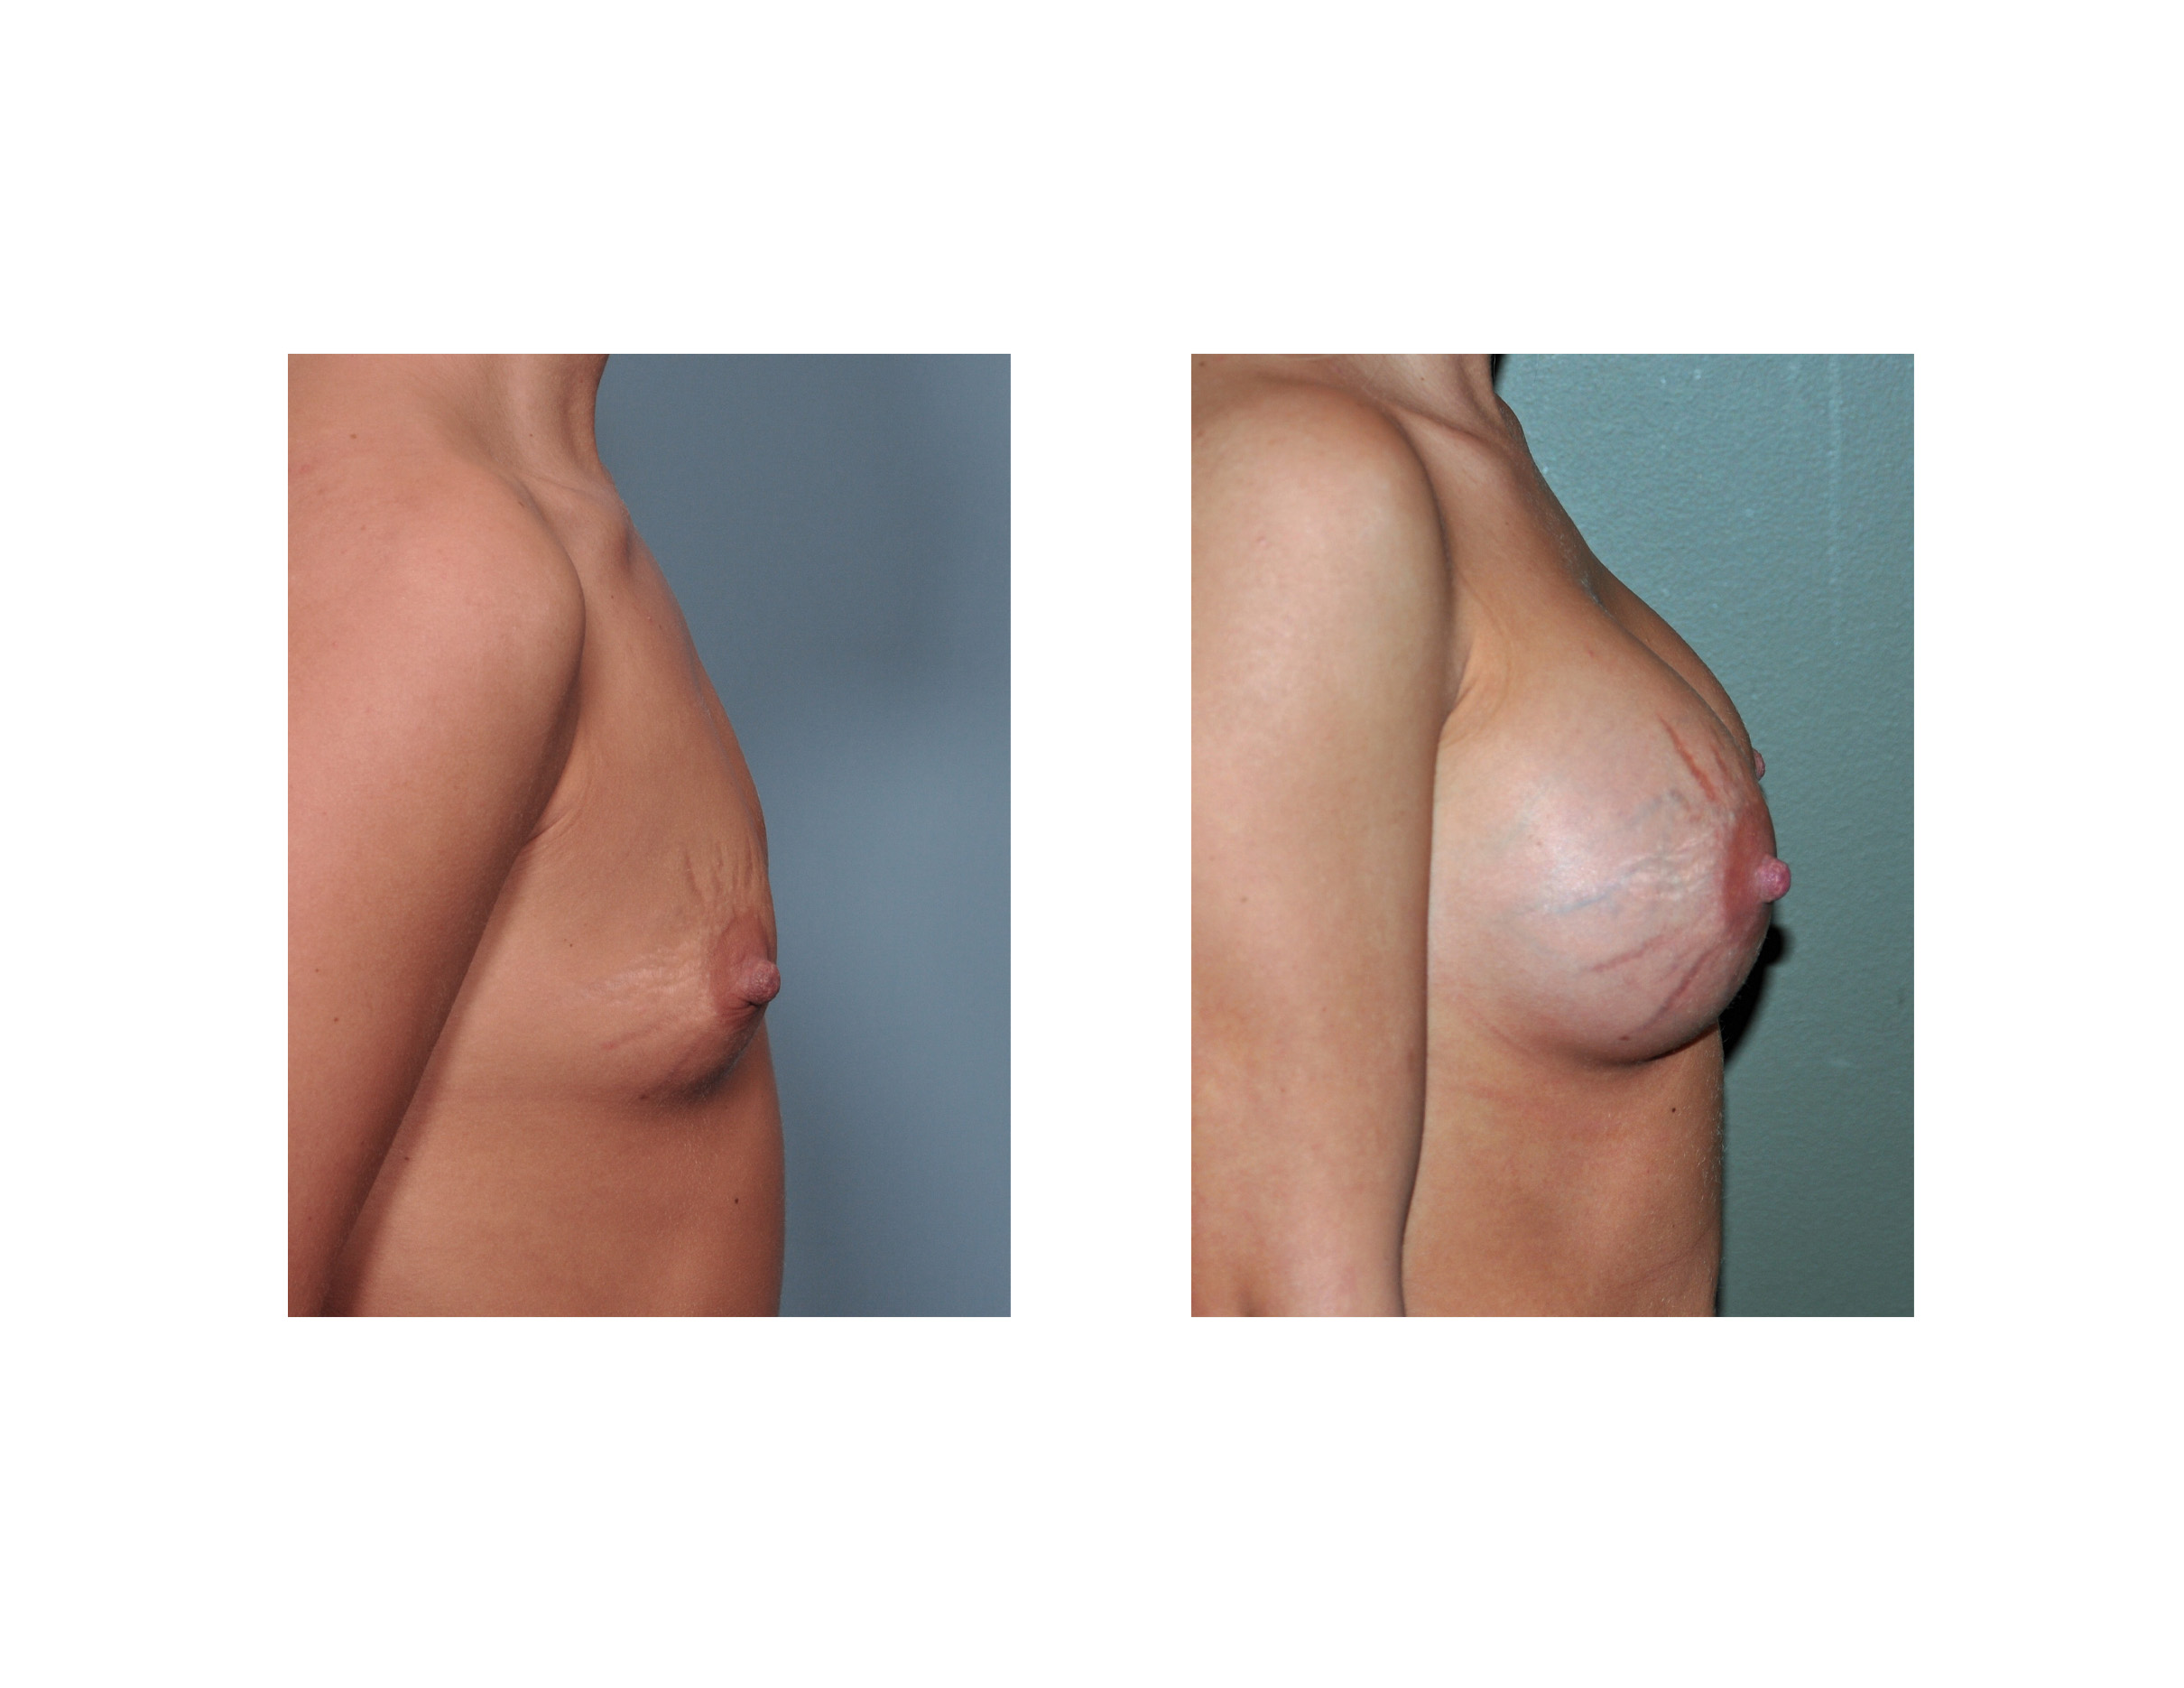 Lumpectomy: What to Expect - Breastcancerorg - Breast